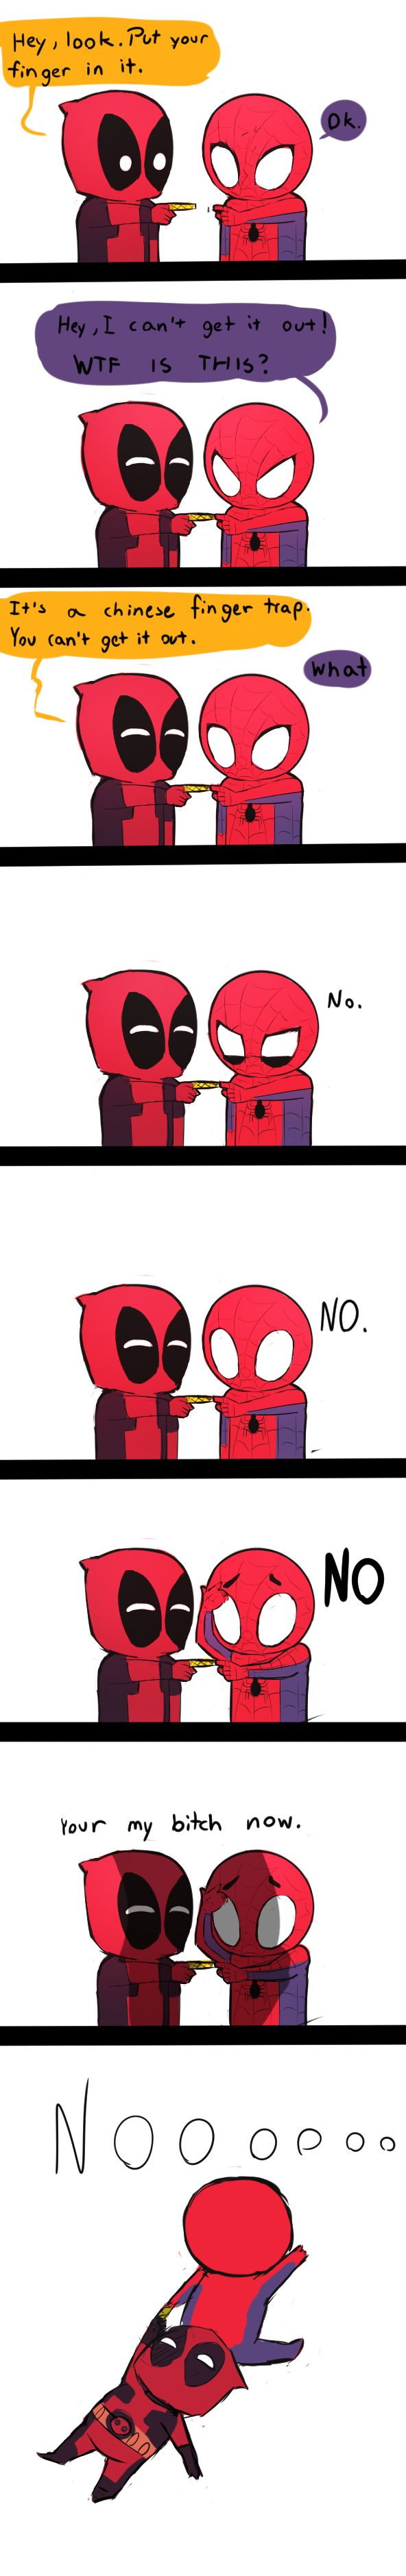 Chinese Finger Trap by Smile-Test on DeviantArt - This is really funny XD